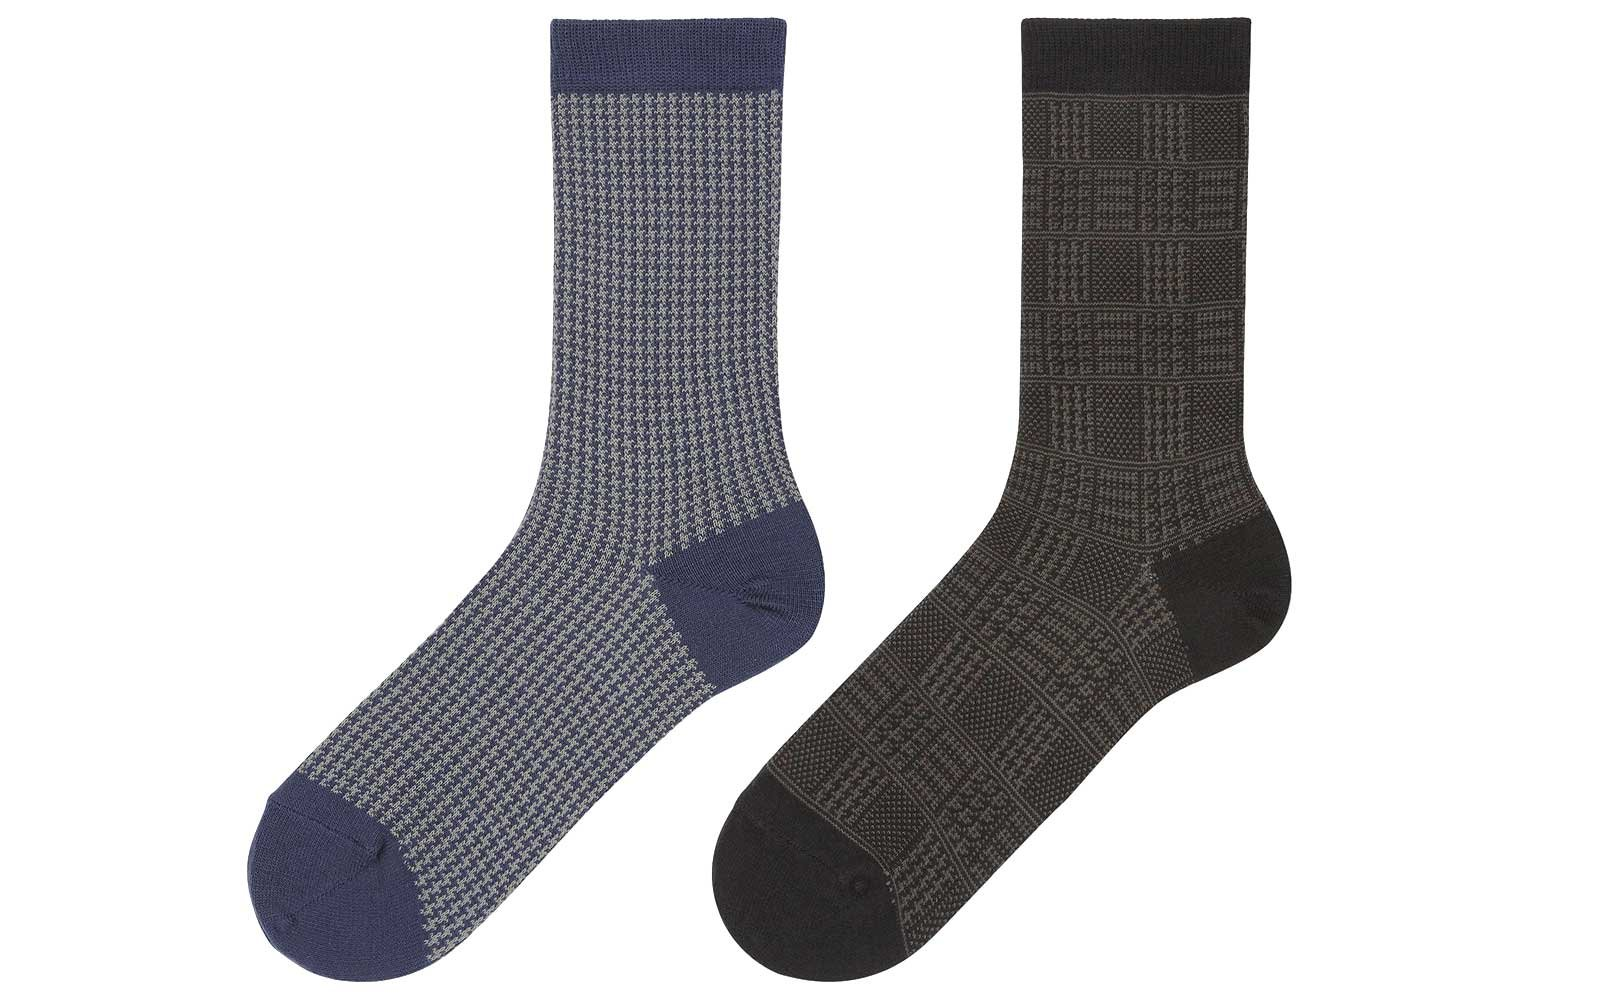 UniQlo HeatTech socks